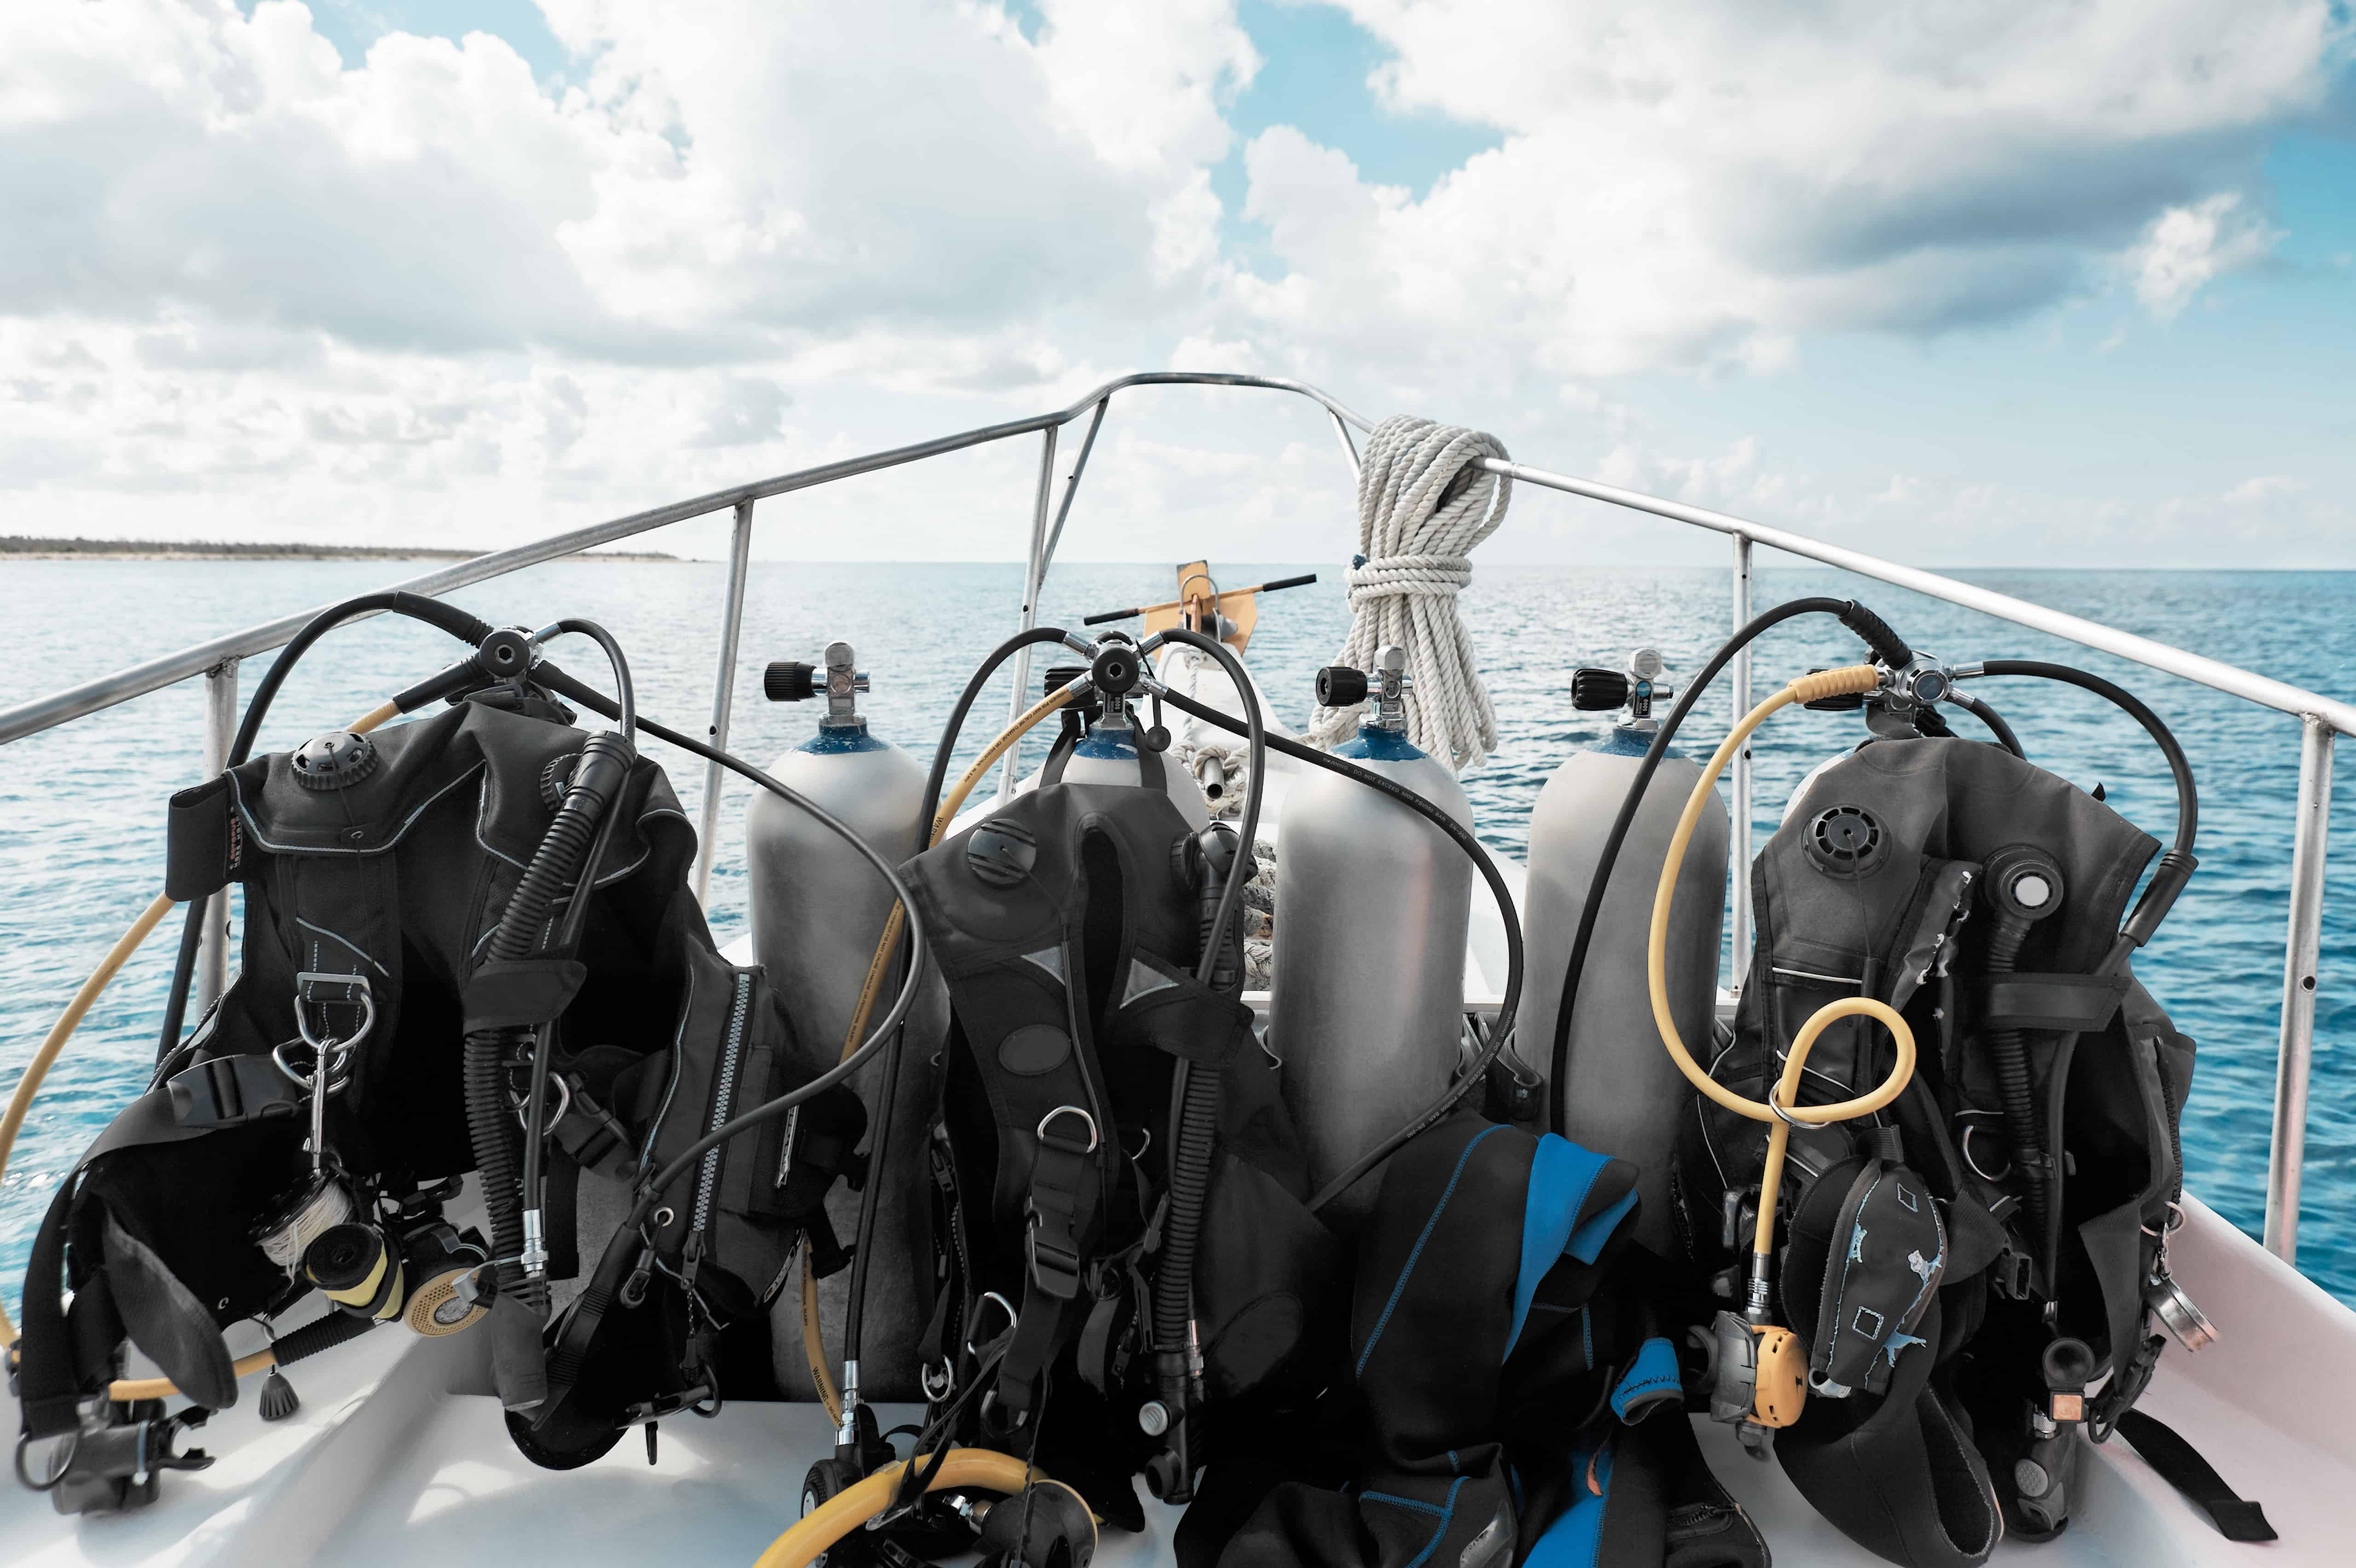 dive gear on boat ready for prep